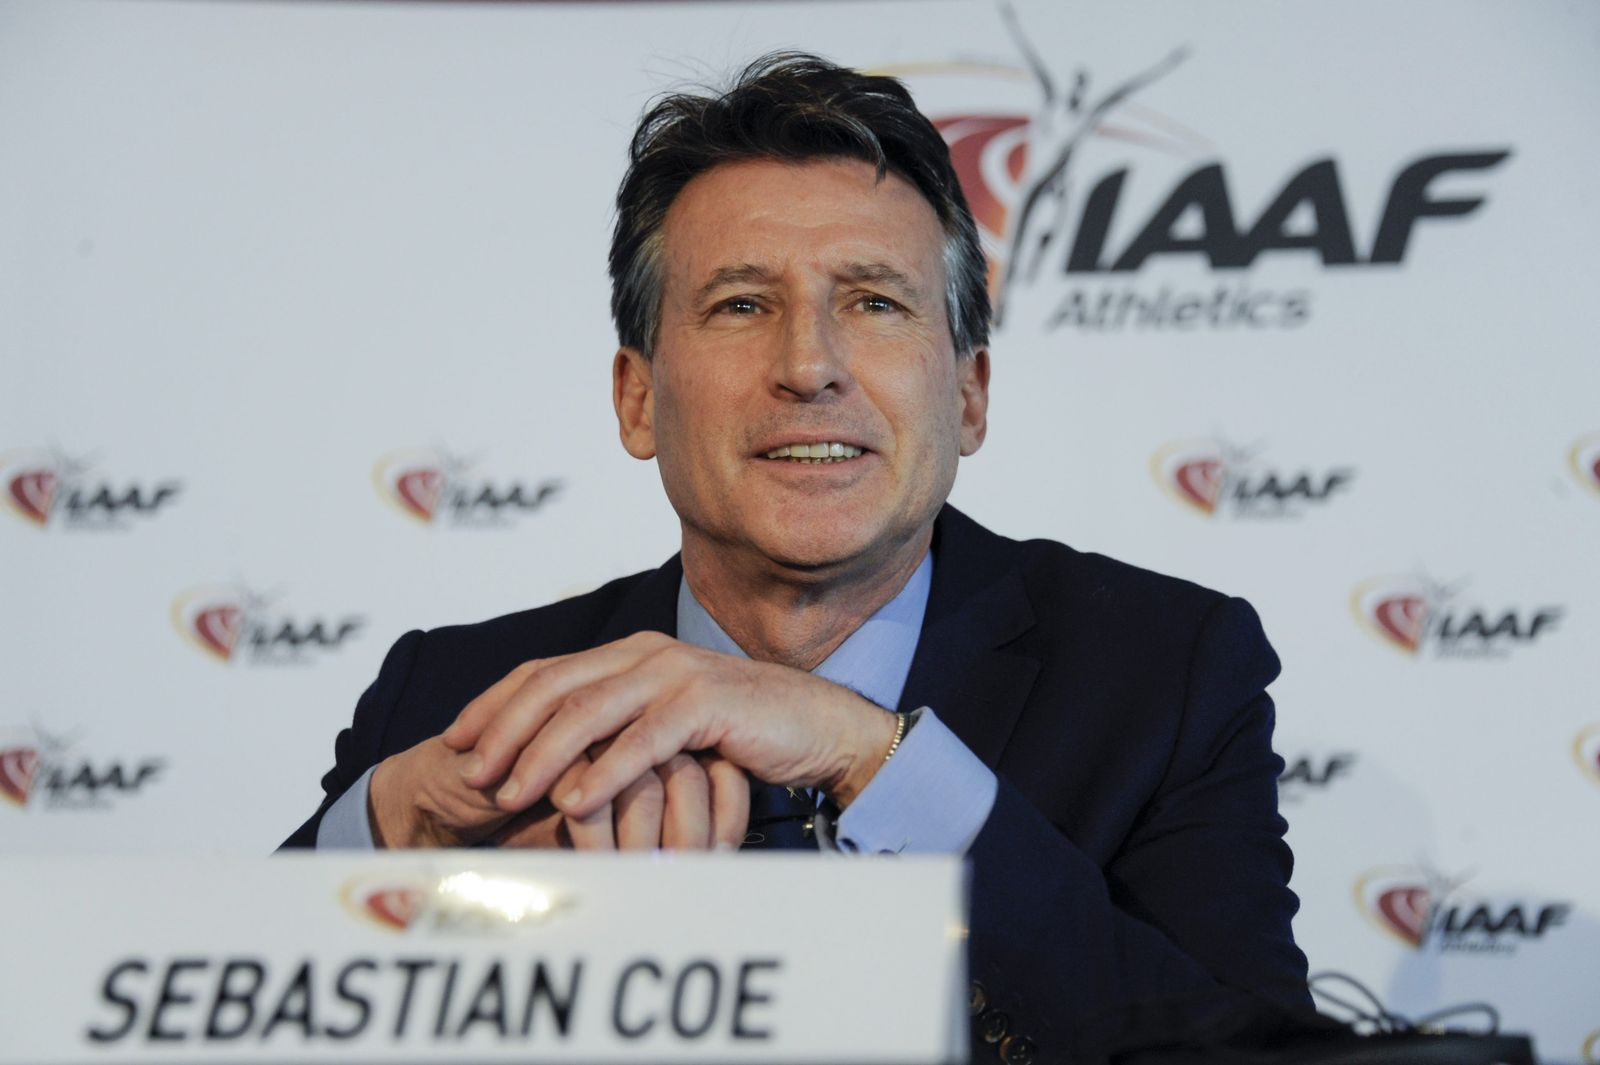 IAAF Council Meeting Press Conference